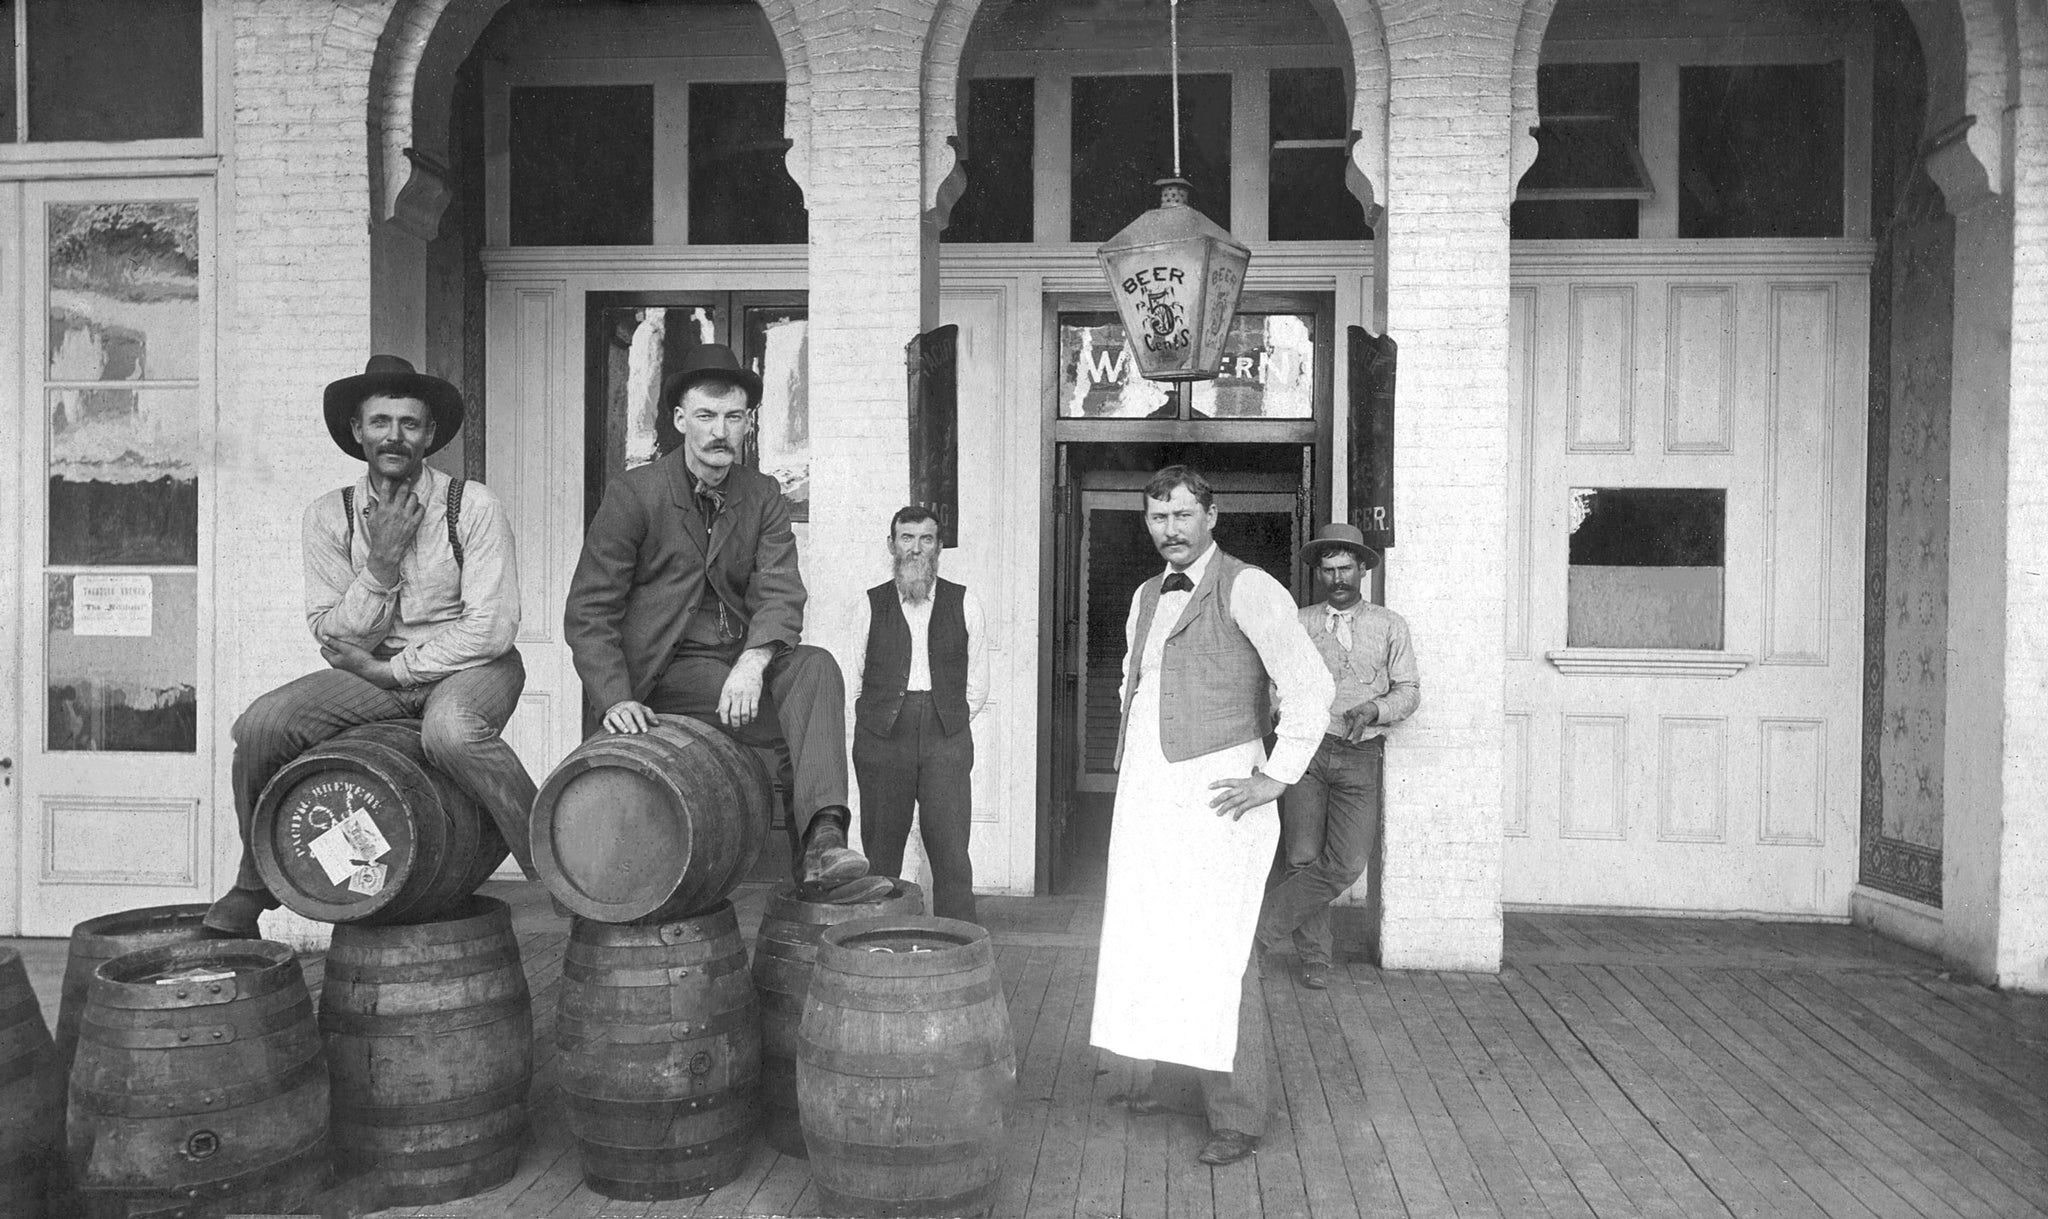 The Western Saloon at 134 Broadway, circa 1895. Henry Arend was the proprietor. -- Courtesy of Randy Taylor Collection